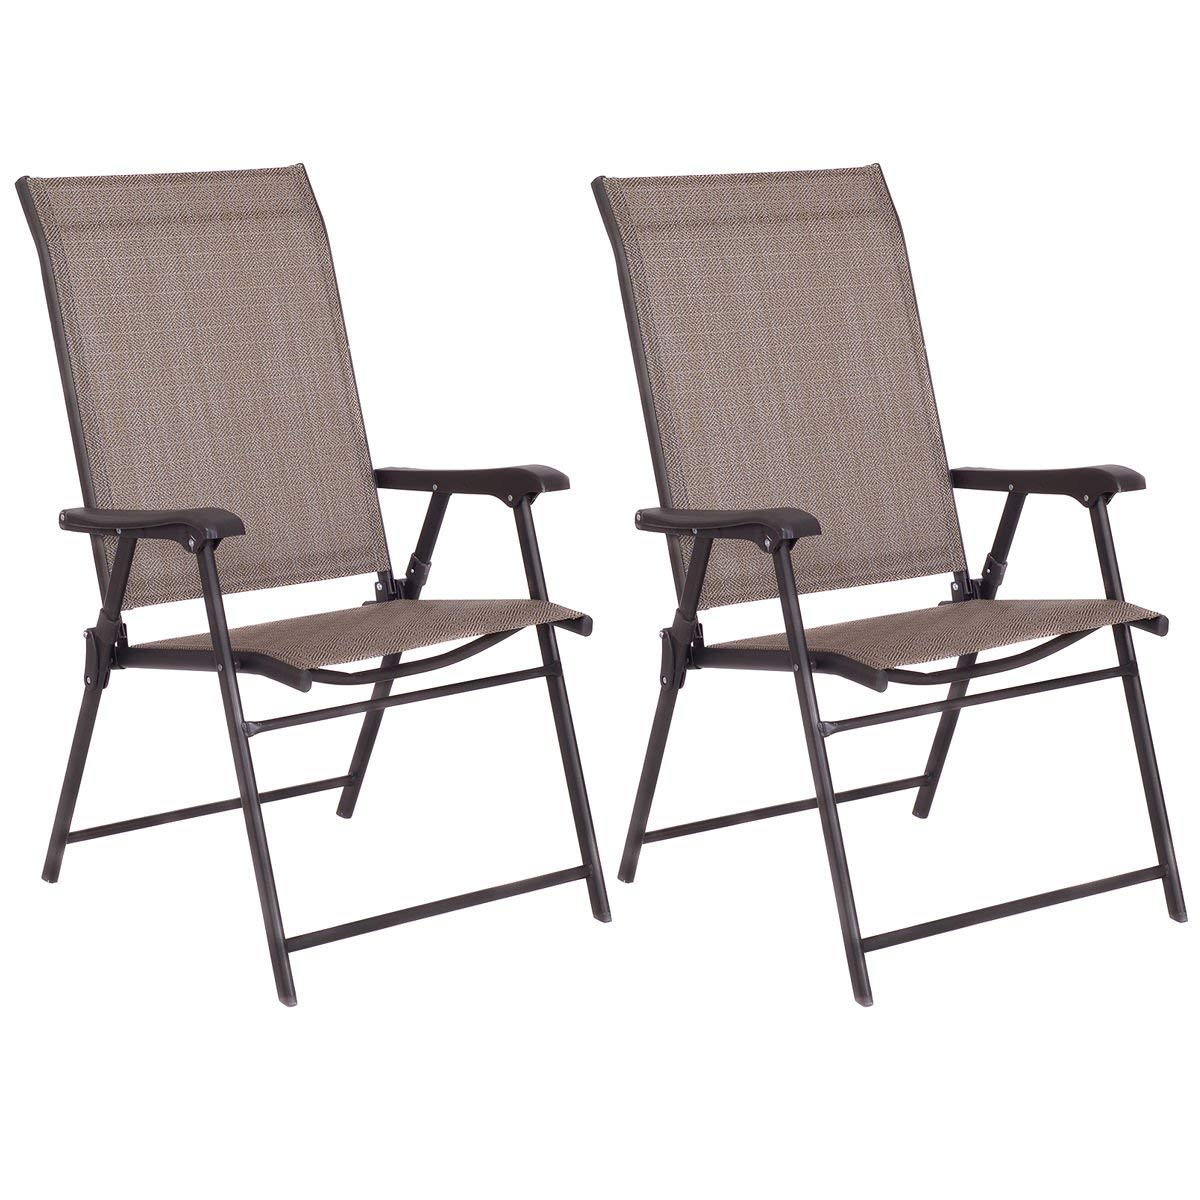 Tangkula 2 Pcs Outdoor Patio Chair Space Saving Stackable Portable Steel Frame Lawn Poolside Backyard Folding Chairs with Armrest & Footrest Commercial Party Home Use Modern Sling Chairs by Tangkula